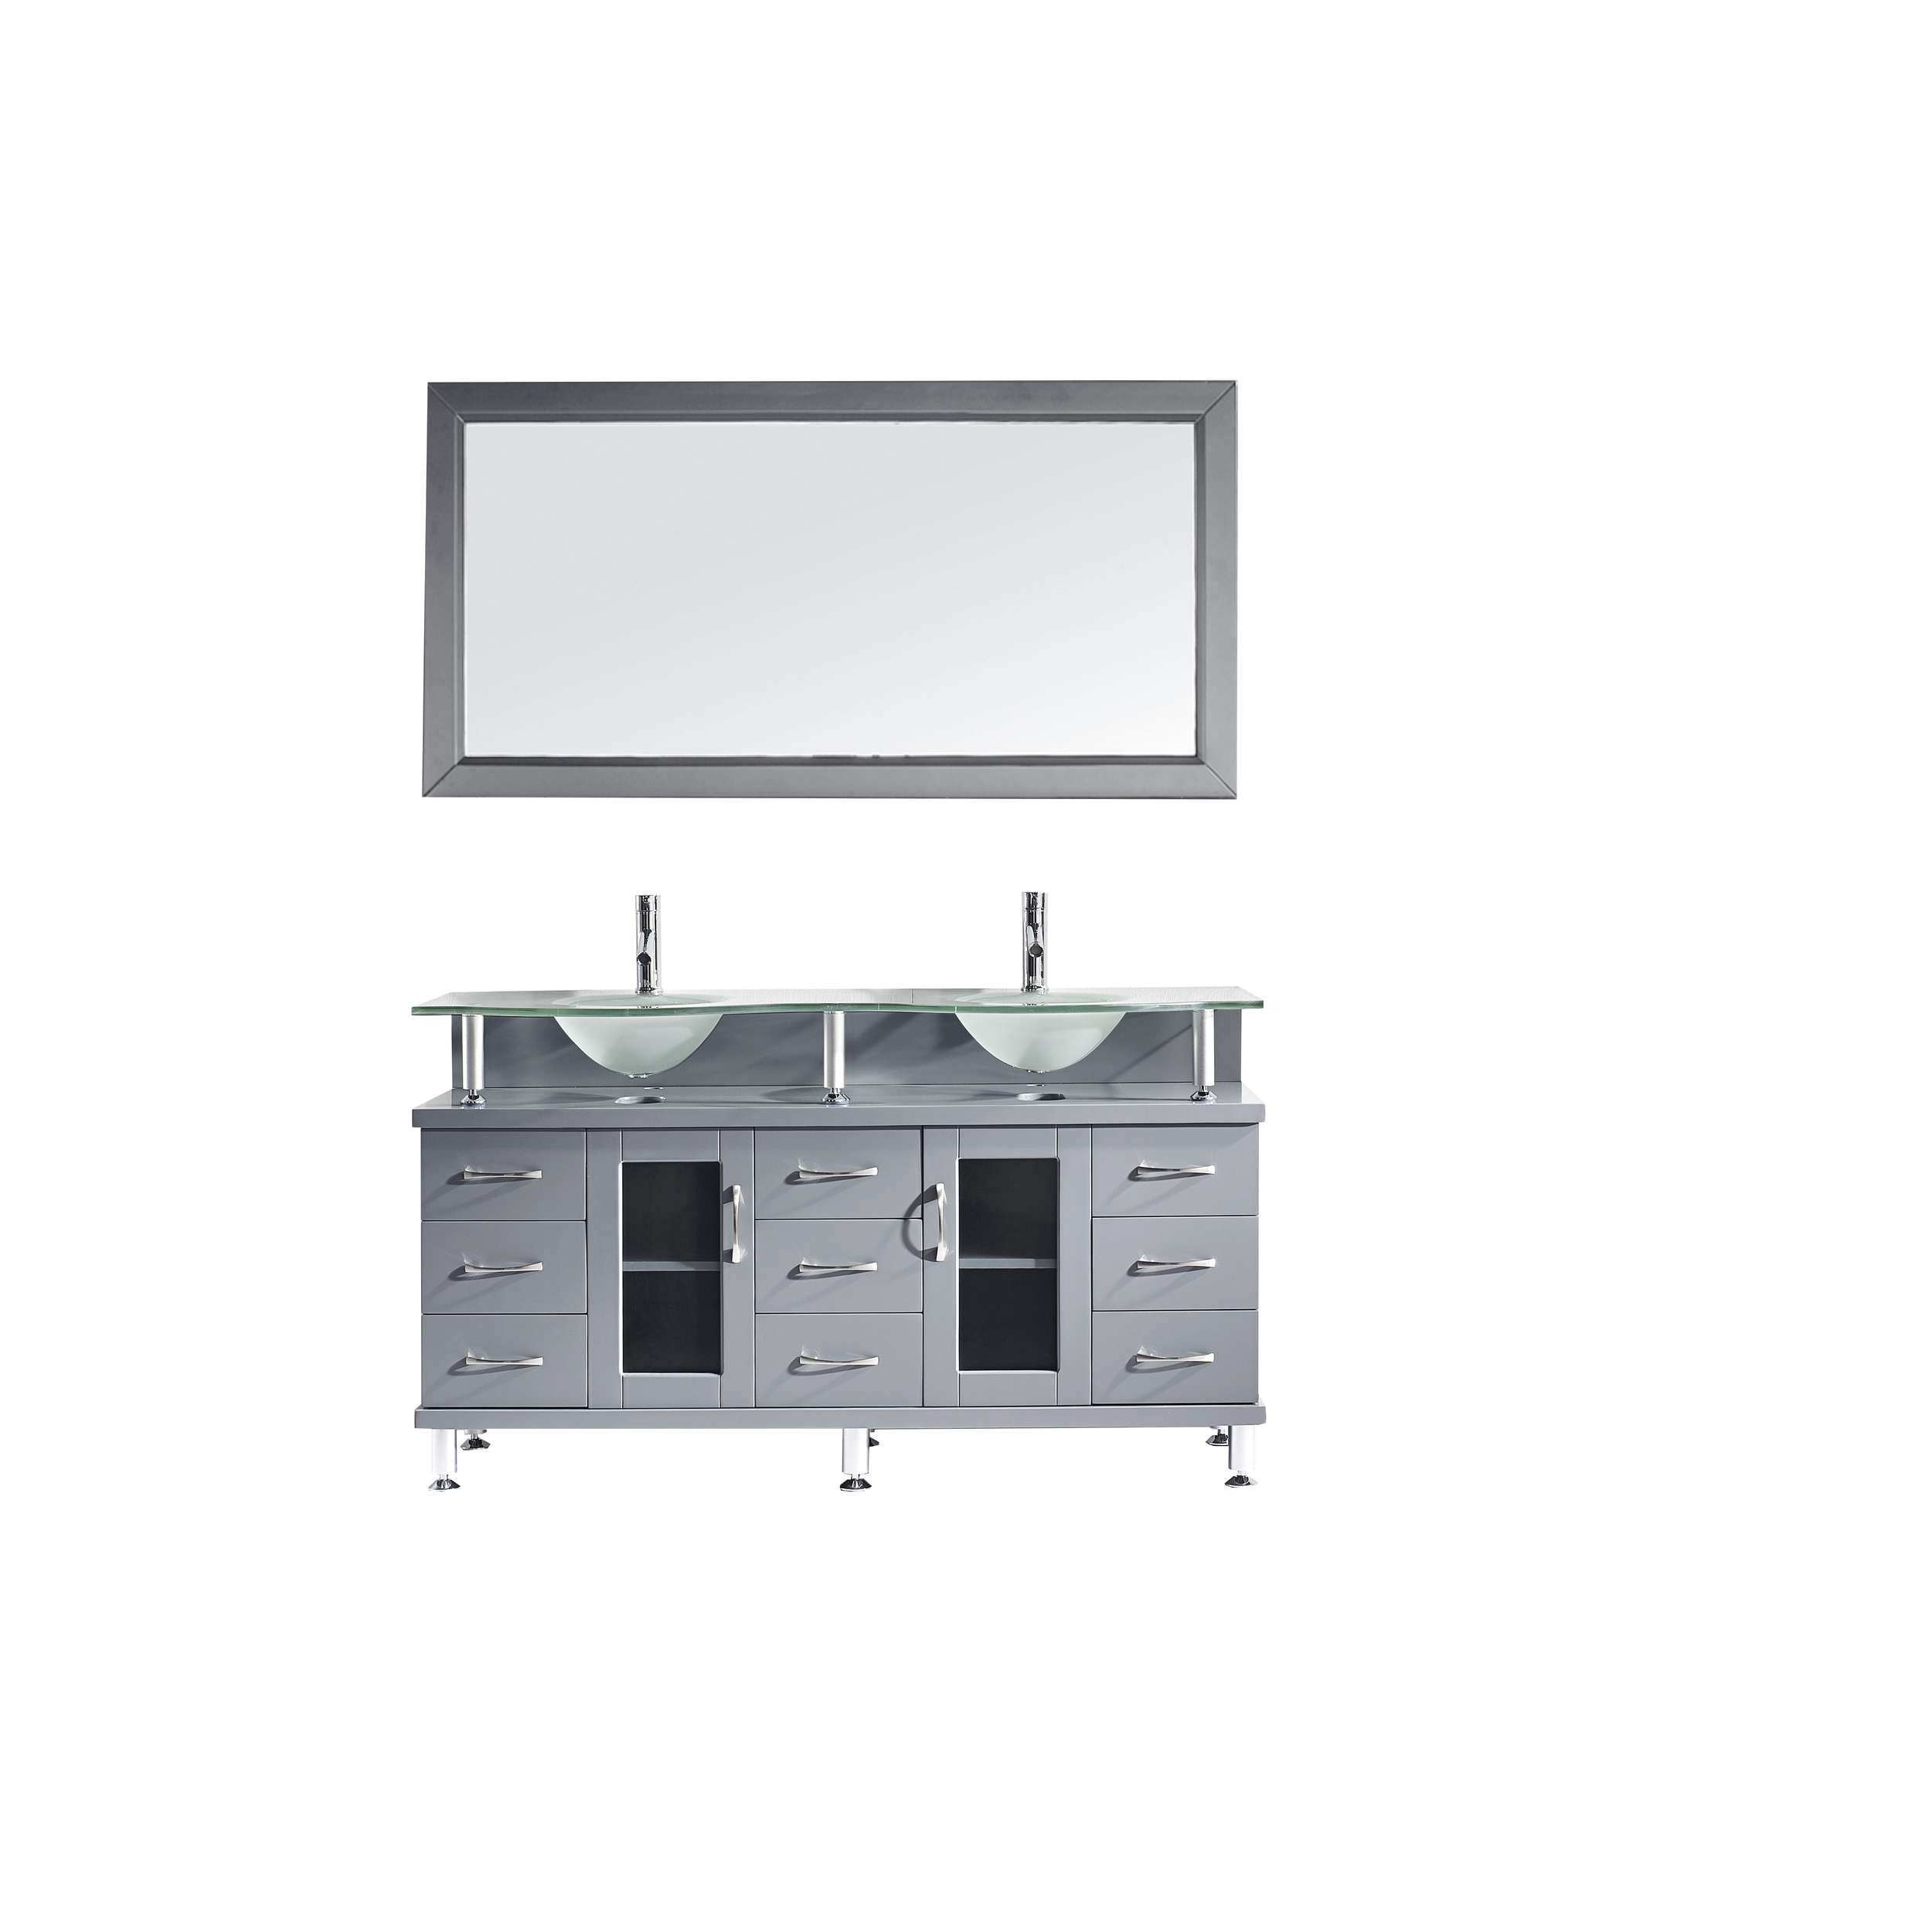 Virtu MD-61-FG-GR Vincente Rocco 59 Inch Double Bathroom Vanity Set In Grey With Frosted Glass Top